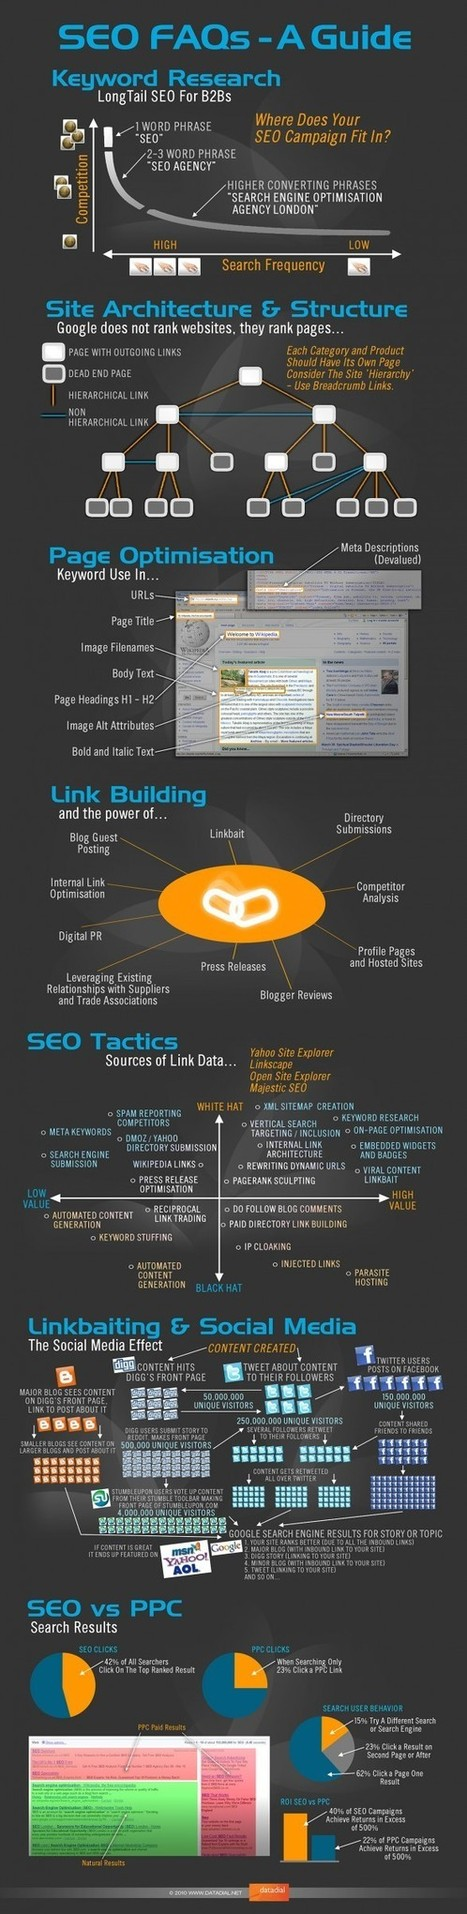 SEO FAQ's a Guide [Infographic] - Servimida.com | Tecnología Web | Scoop.it